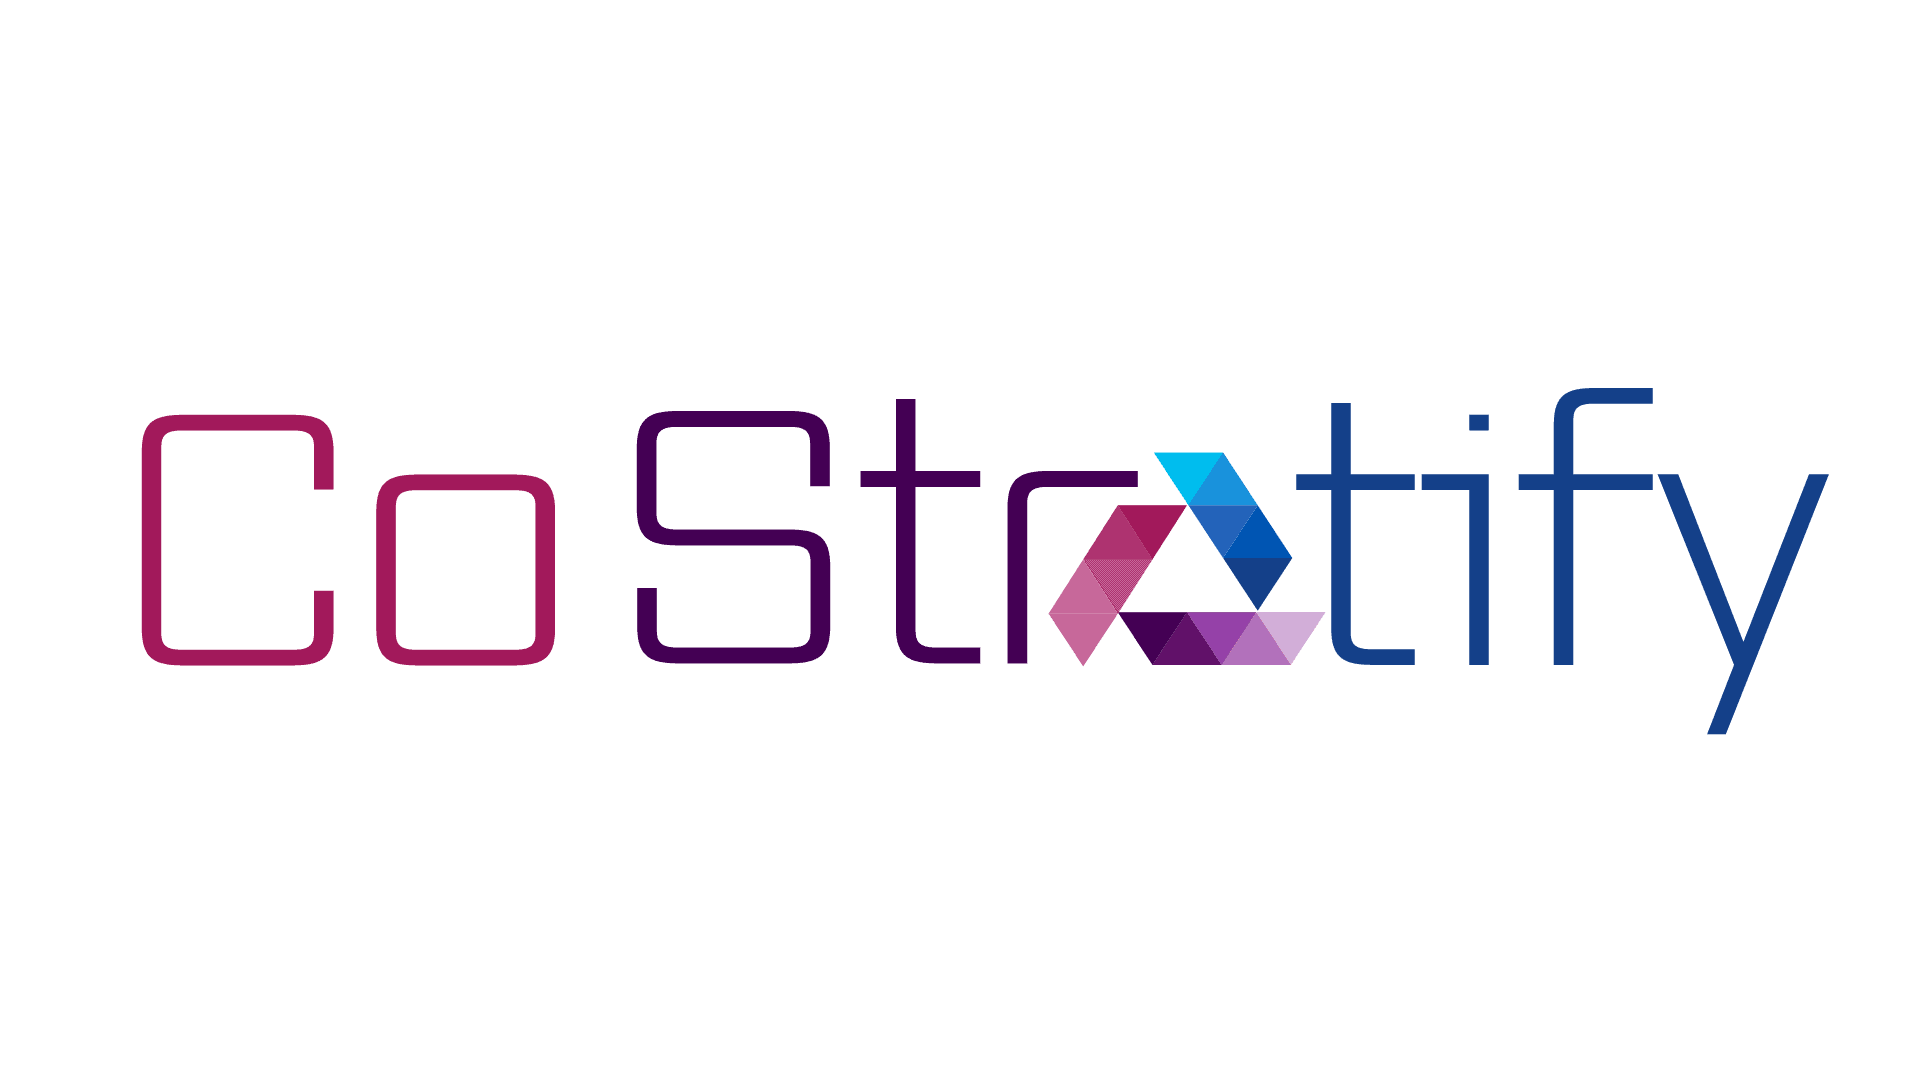 CoStratify Limited